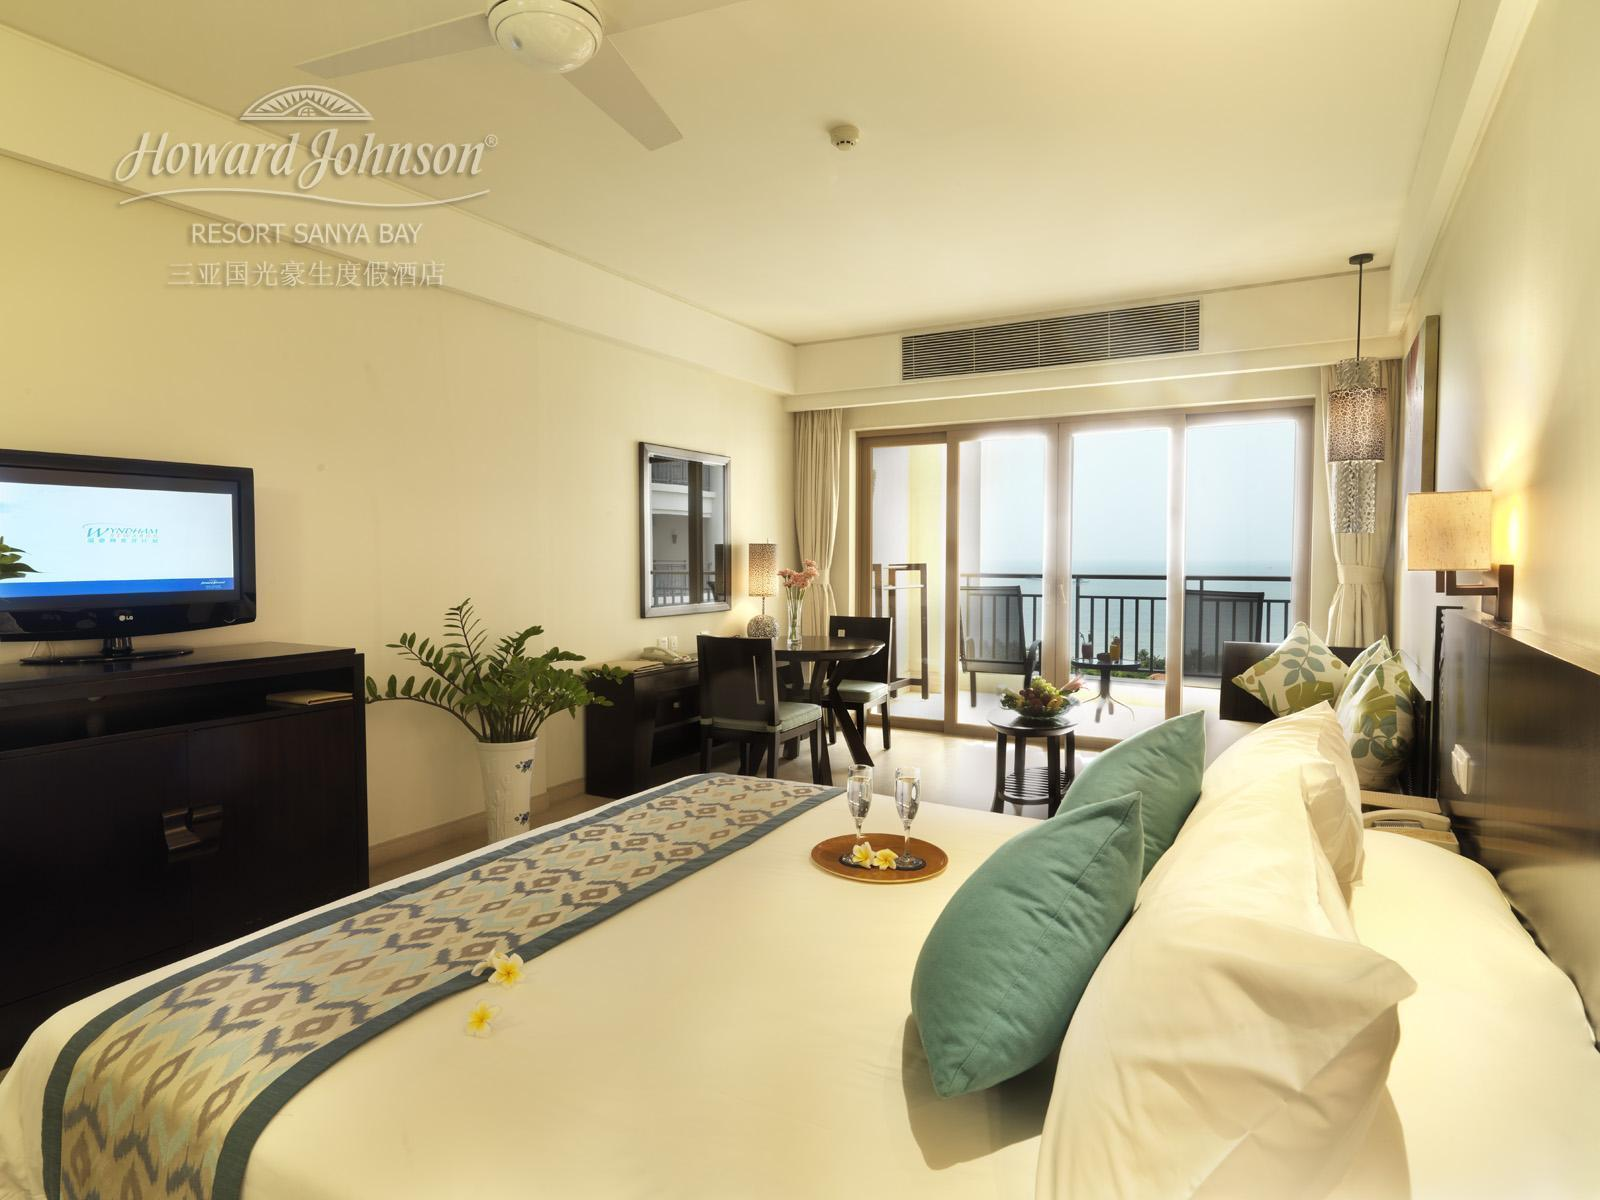 Howard Johnson Resort Sanya Bay55